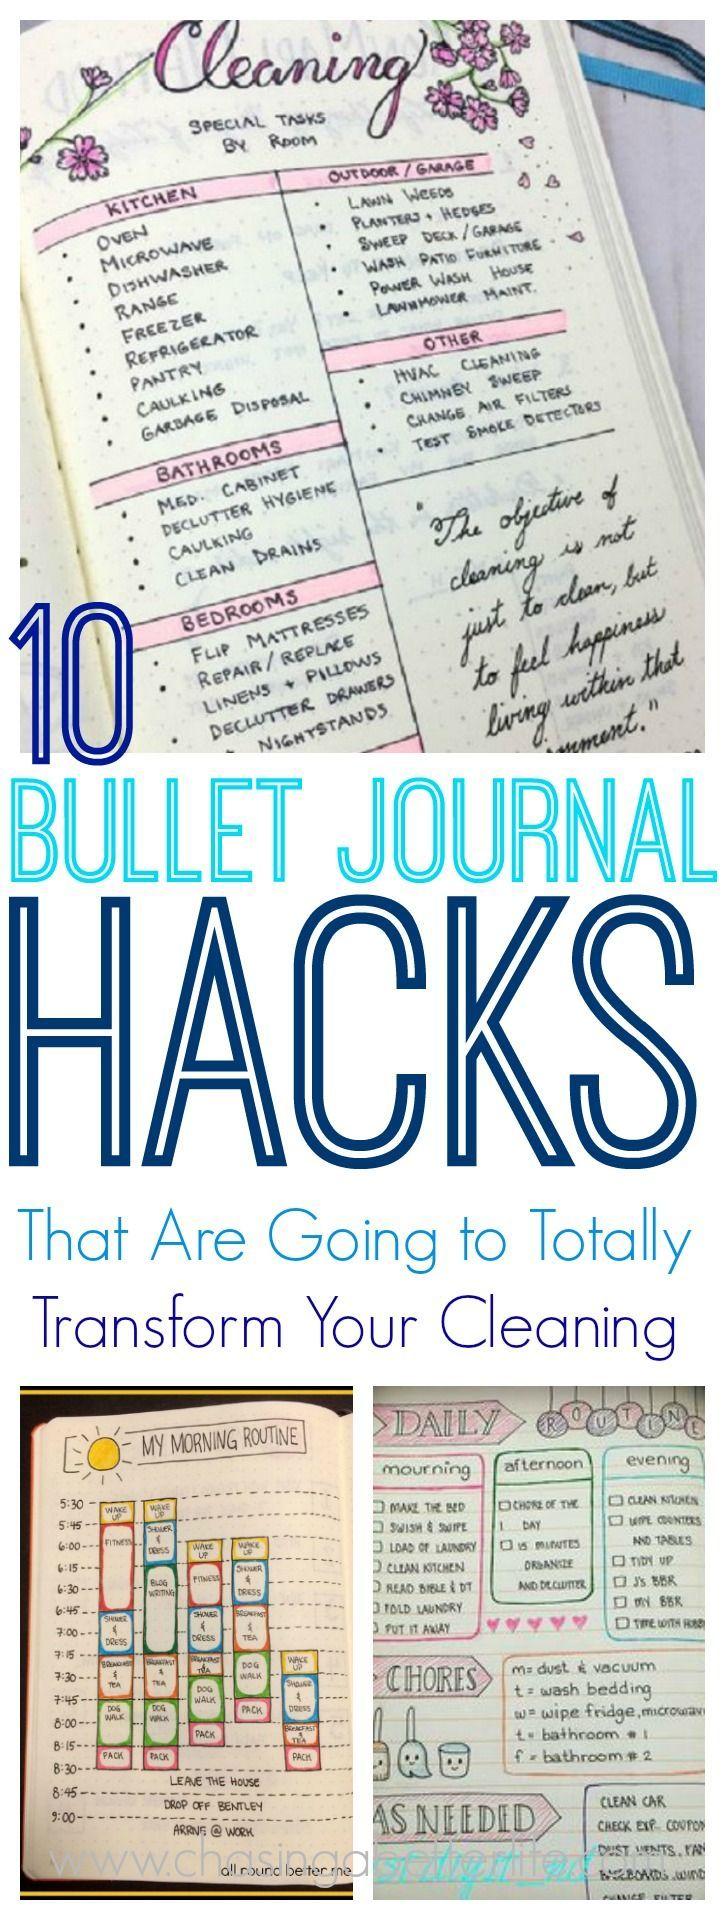 These 10 bullet journal hacks are THE BEST! I'm so glad I found these great bullet journal tips and hacks that actually work! Now I can be more productive in my cleaning when using my bullet journal! Definitely saving for later! #bulletjournal #journal #bulletjournaling